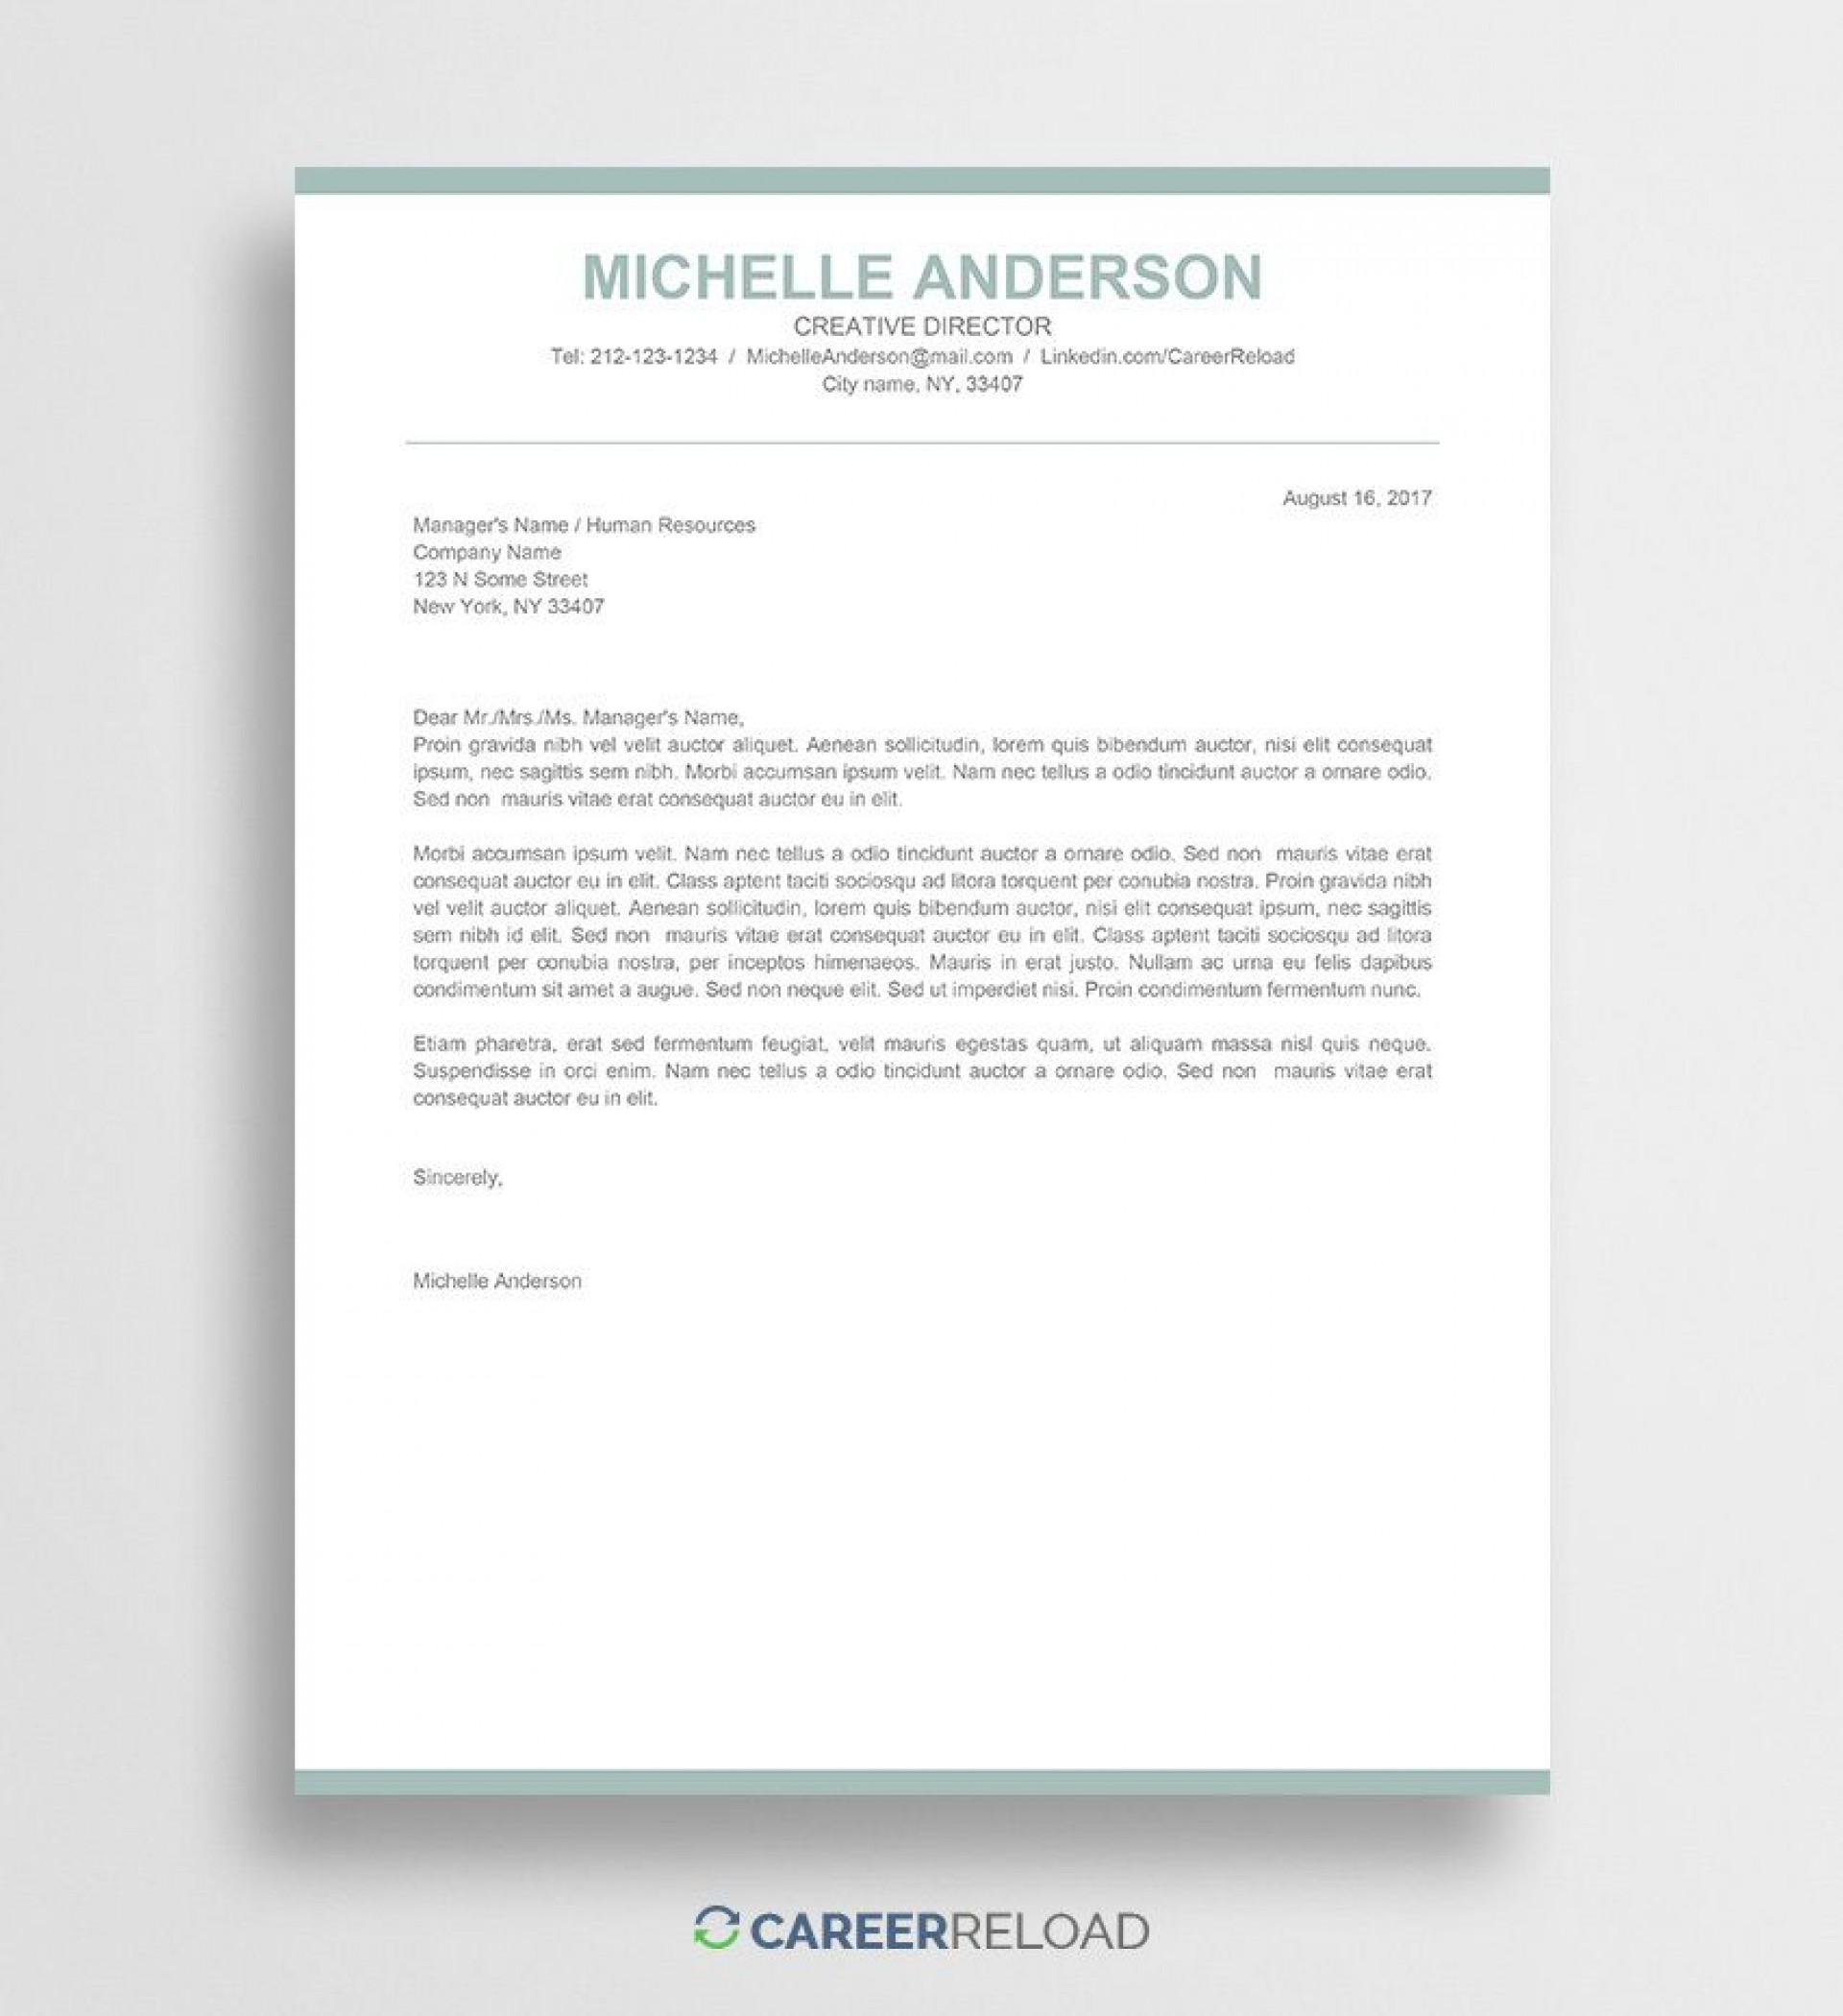 011 Stupendou Download Cover Letter Template Free Photo  Mac Creative Microsoft Word Document1920